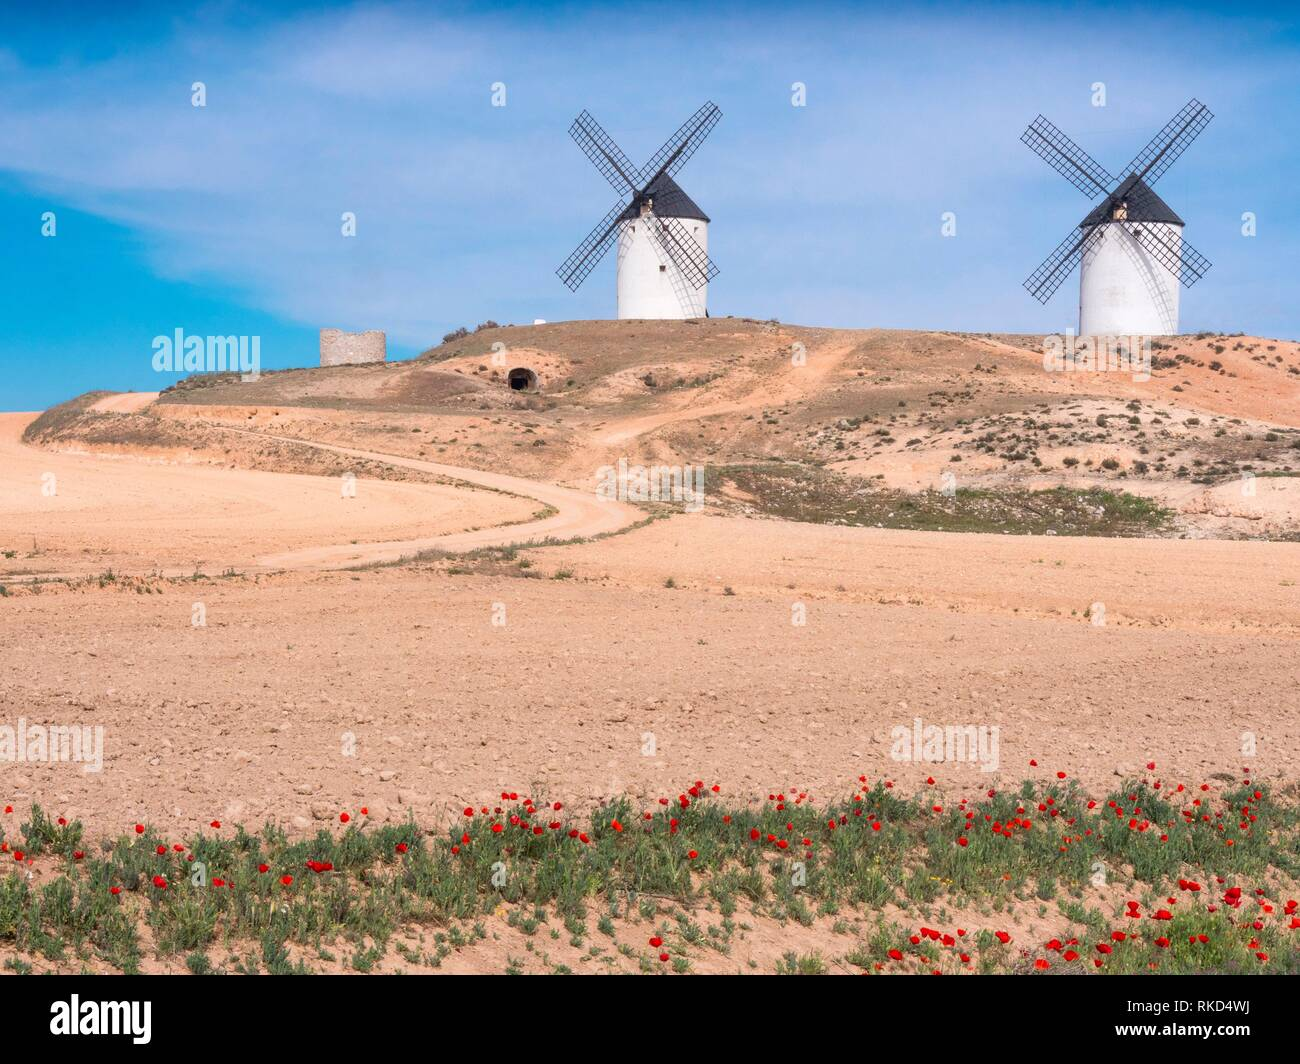 Spain, Castile-La Mancha, Province of Ciudad Real, the famed Don Quixote´s Windmills at Tembleque - Stock Image